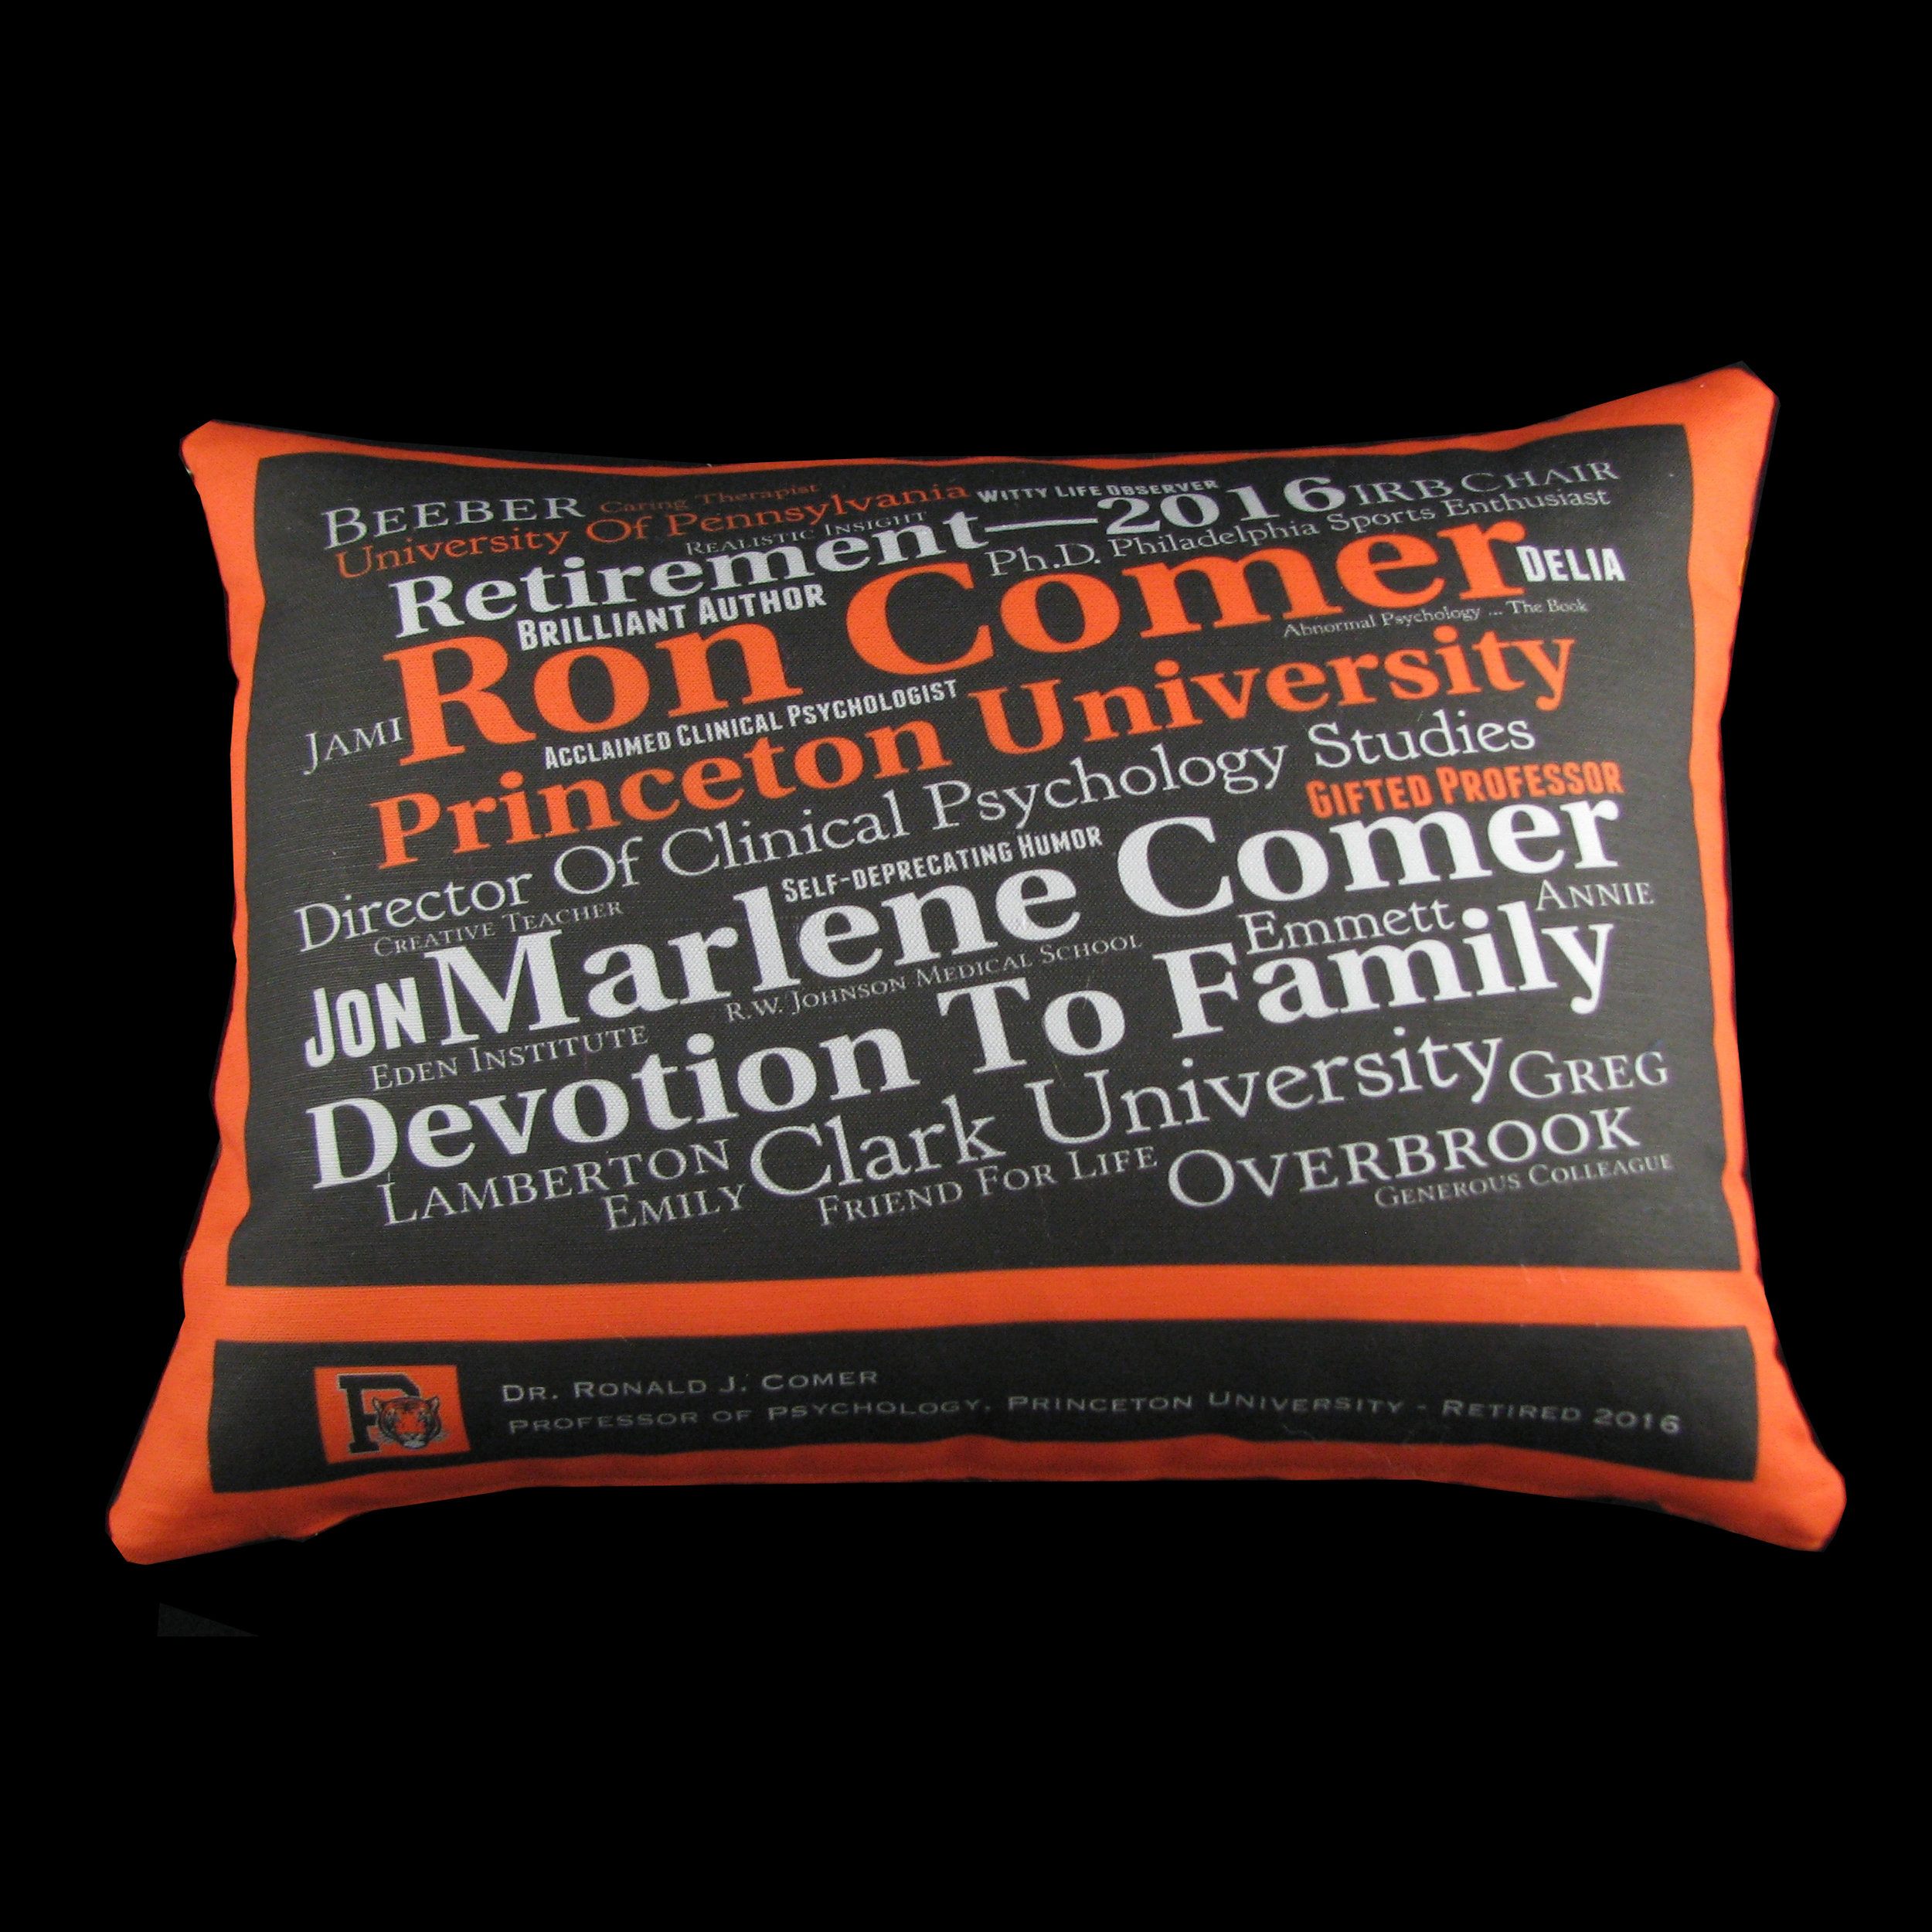 CLICK THE PILLOW ABOVE TO SEE MORE WORDCLOUD PILLOWS